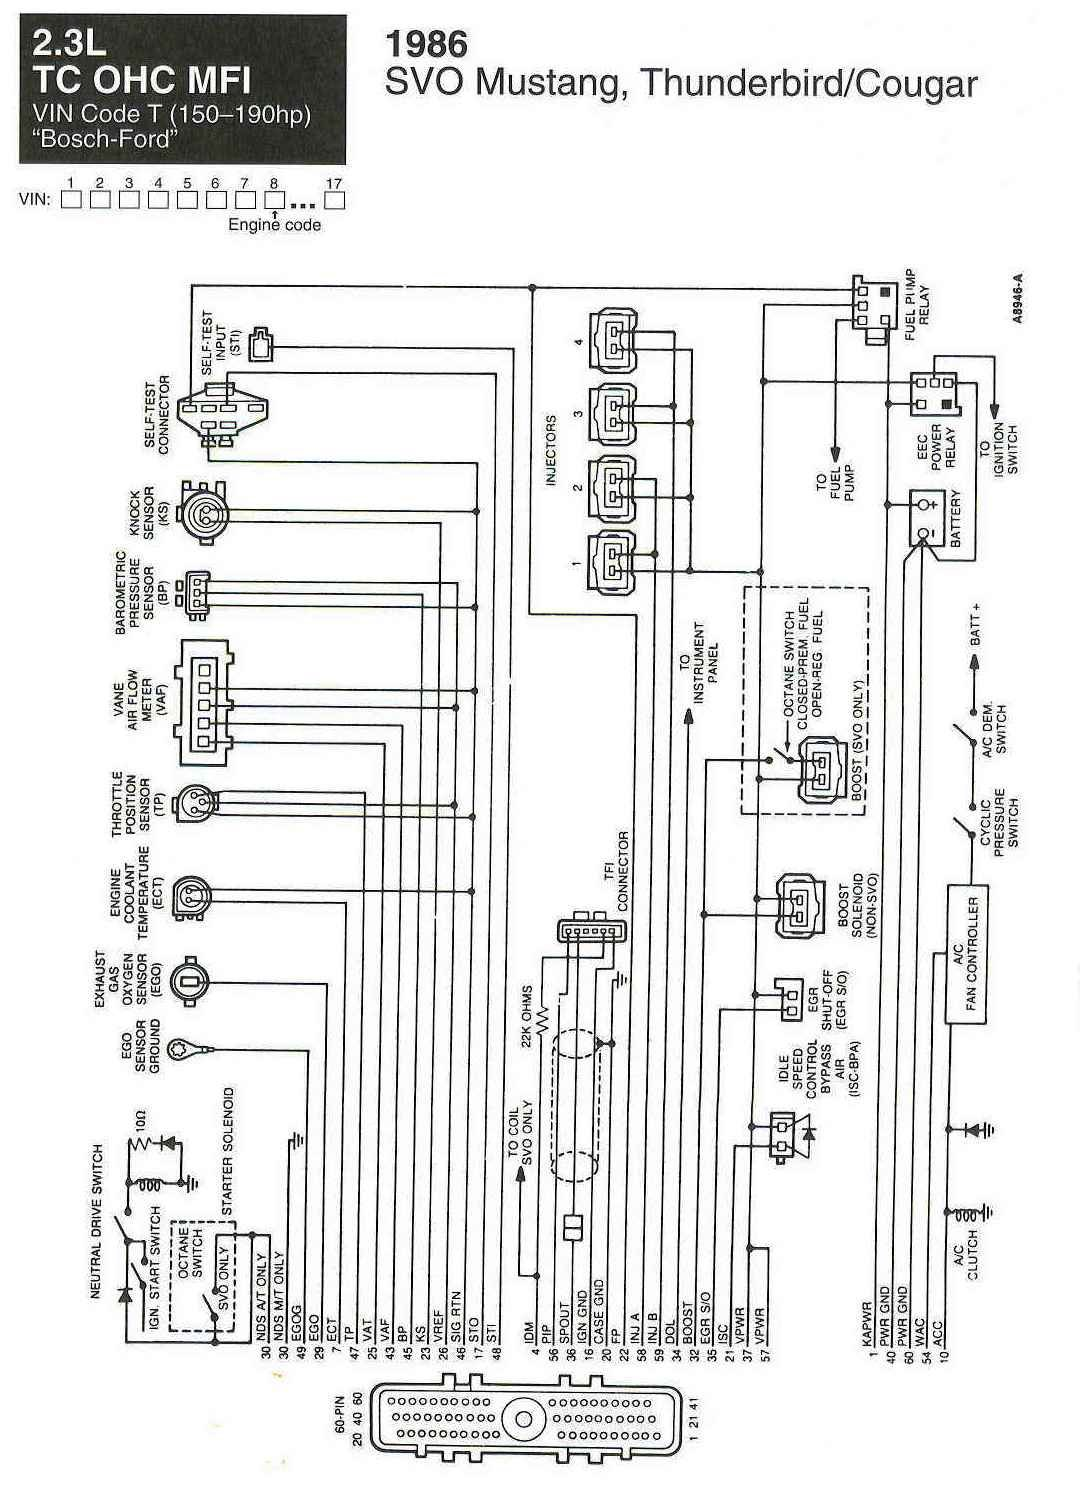 Mustang Wiring Harness on 69 dodge wiring harness, 92 mustang wiring harness, 66 mustang wiring harness, 67 mustang wiring harness, 89 mustang wiring harness, 01 mustang wiring harness, 65 mustang wiring harness, 95 mustang wiring harness, 91 mustang wiring harness, 88 mustang wiring harness, 68 camaro wiring harness, 72 nova wiring harness, 94 mustang wiring harness, 71 chevelle wiring harness, 08 corvette wiring harness, 68 mustang wiring harness, 87 mustang wiring harness, 05 gto wiring harness, 69 camaro wiring harness, 74 nova wiring harness,